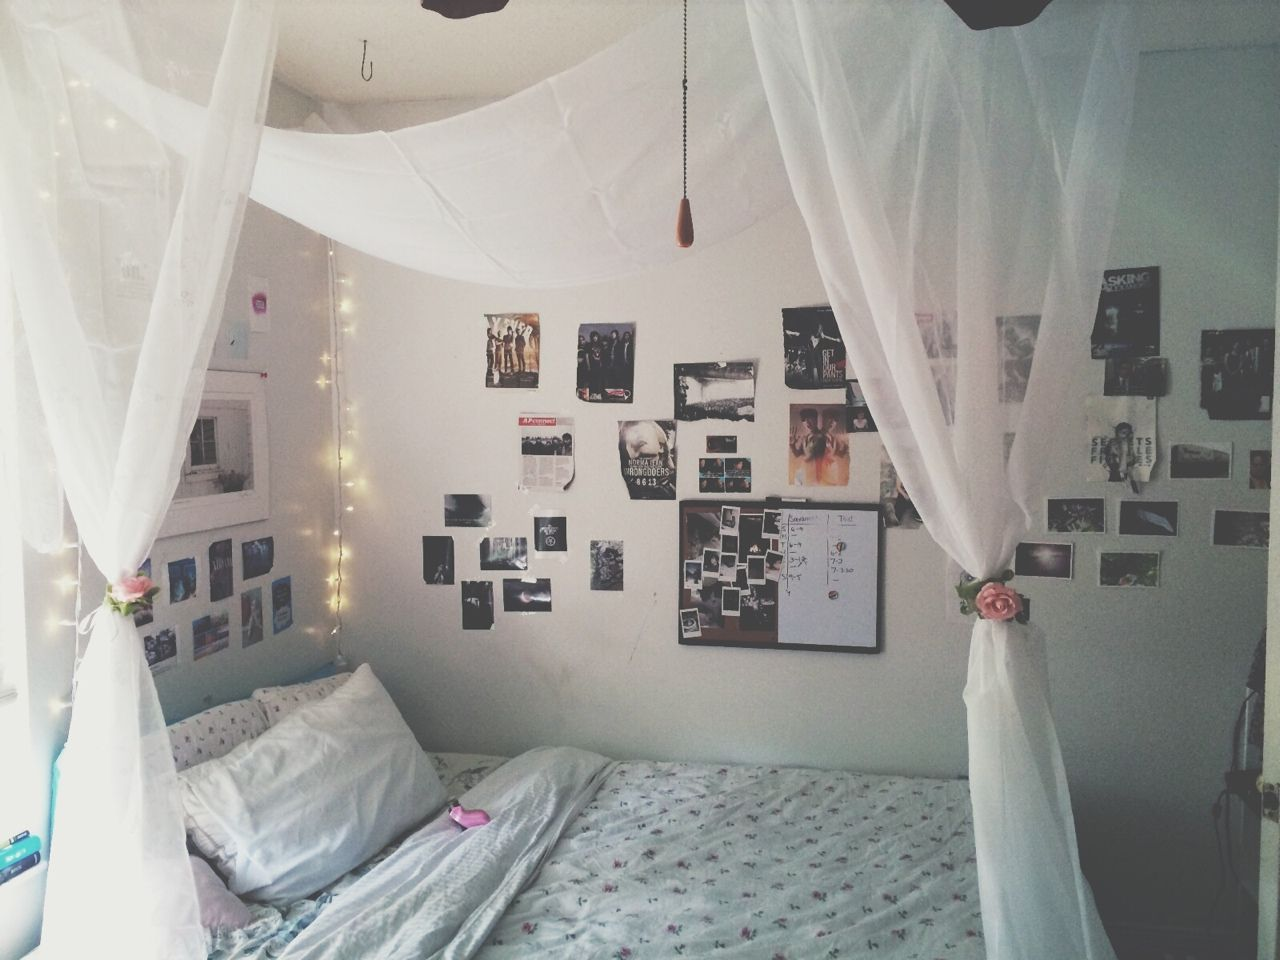 Pretty bedrooms tumblr for girls - Diy Bedrooms Dream Roomsdream Bedroombedroom Girlspretty